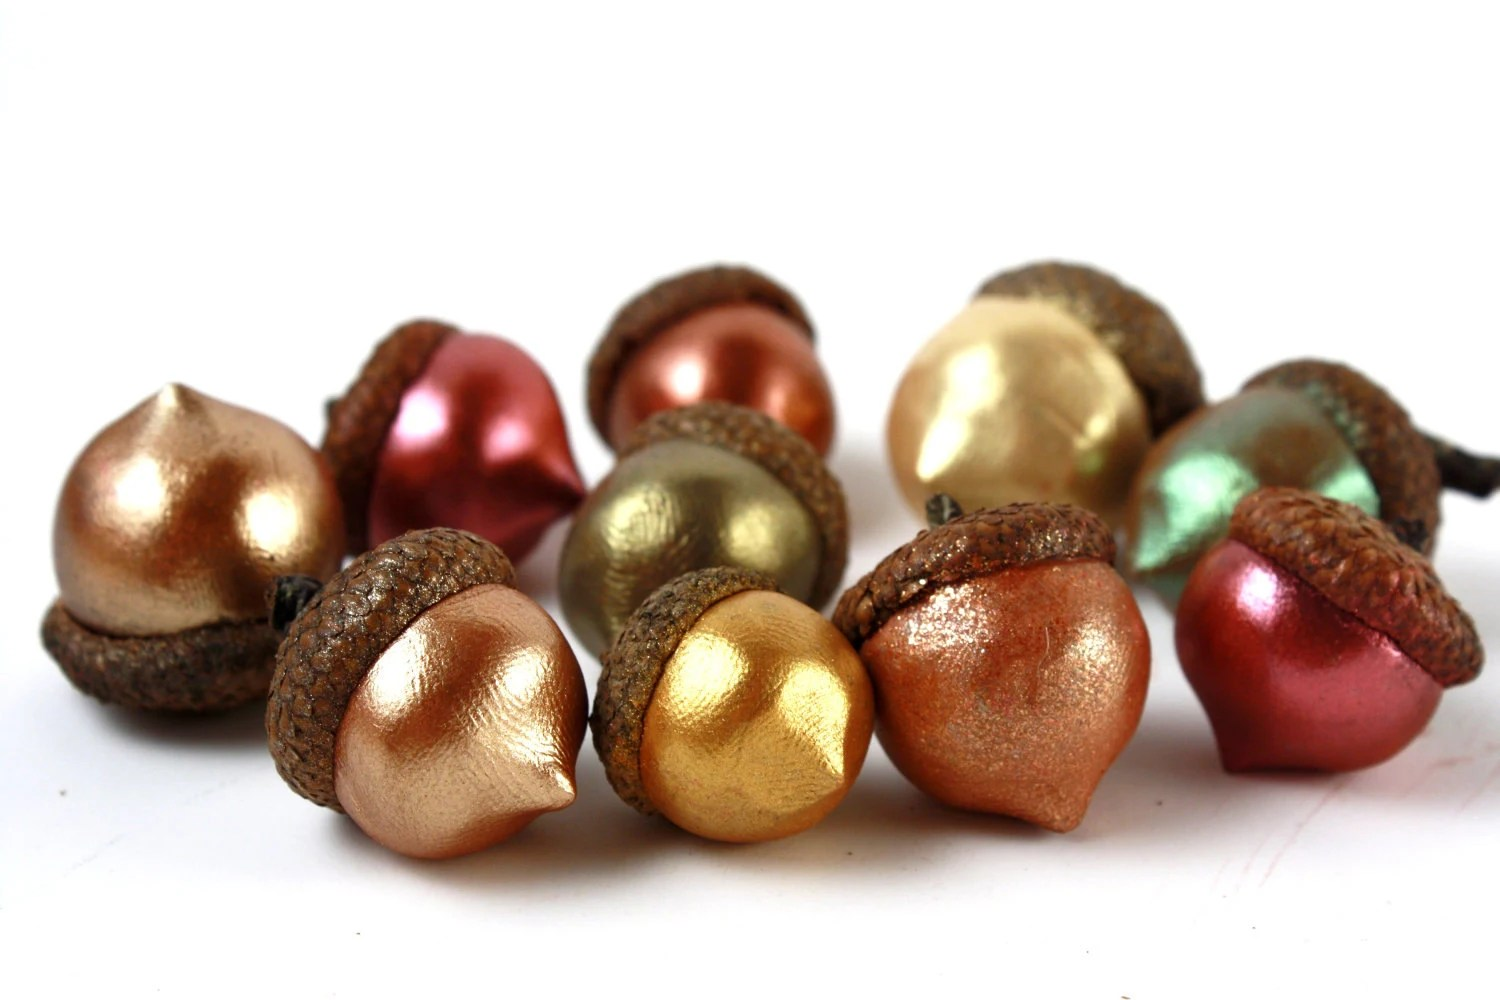 Set of 10 Sculpted Shimmer Acorns with Natural Caps in Autumn Colors - made to order